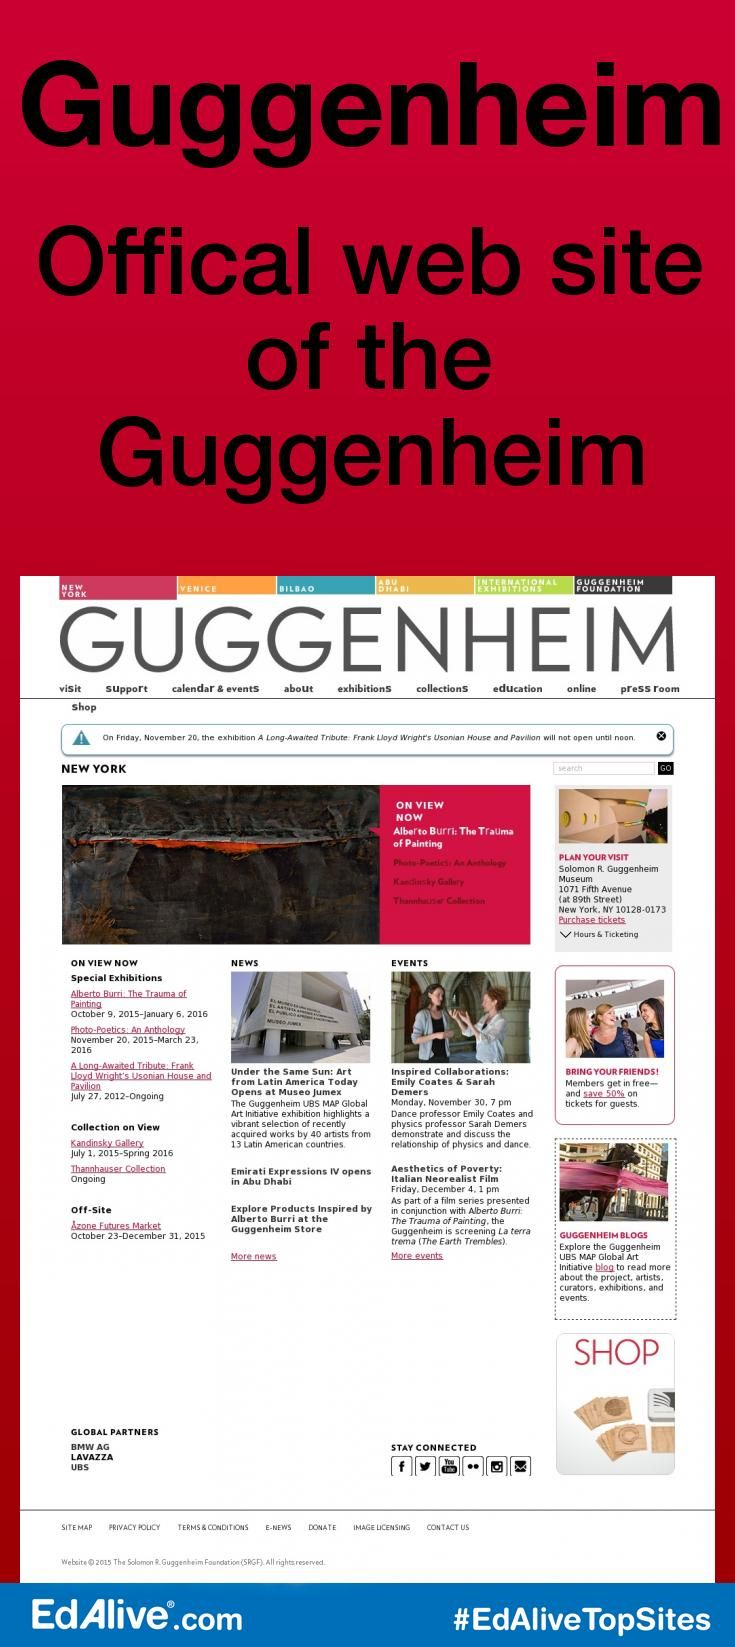 Offical web site of the Guggenheim | Global network of contemporary art museums operated by the Guggenheim Foundation. #MuseumsandGalleries #EdAliveTopSites